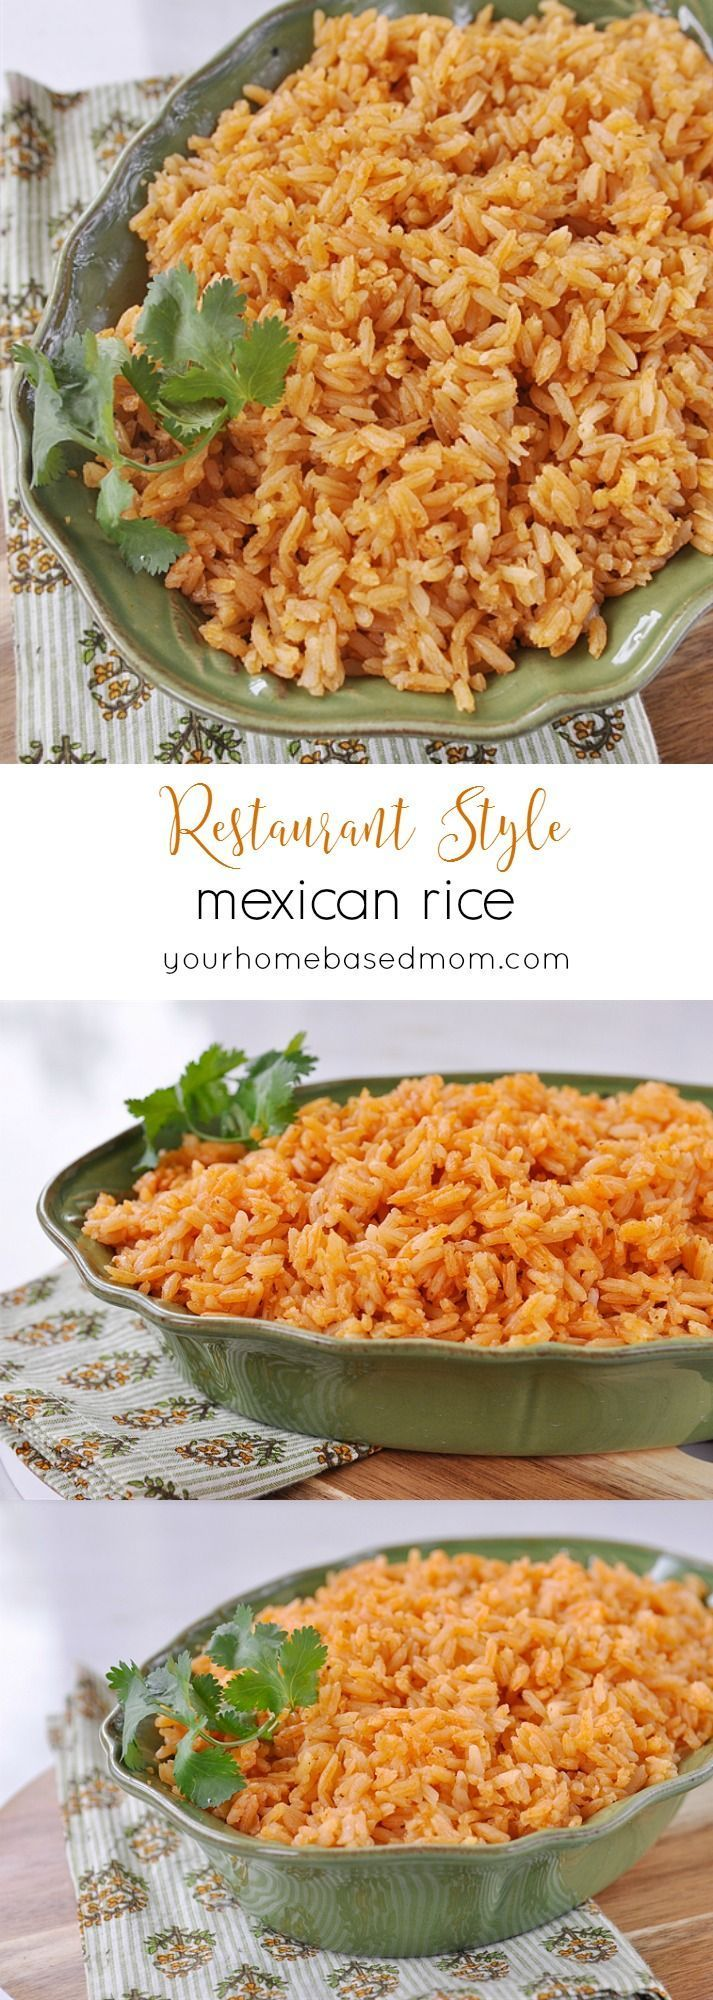 Restaurant Style Mexican Rice Recipe | Leigh Anne Wilkes